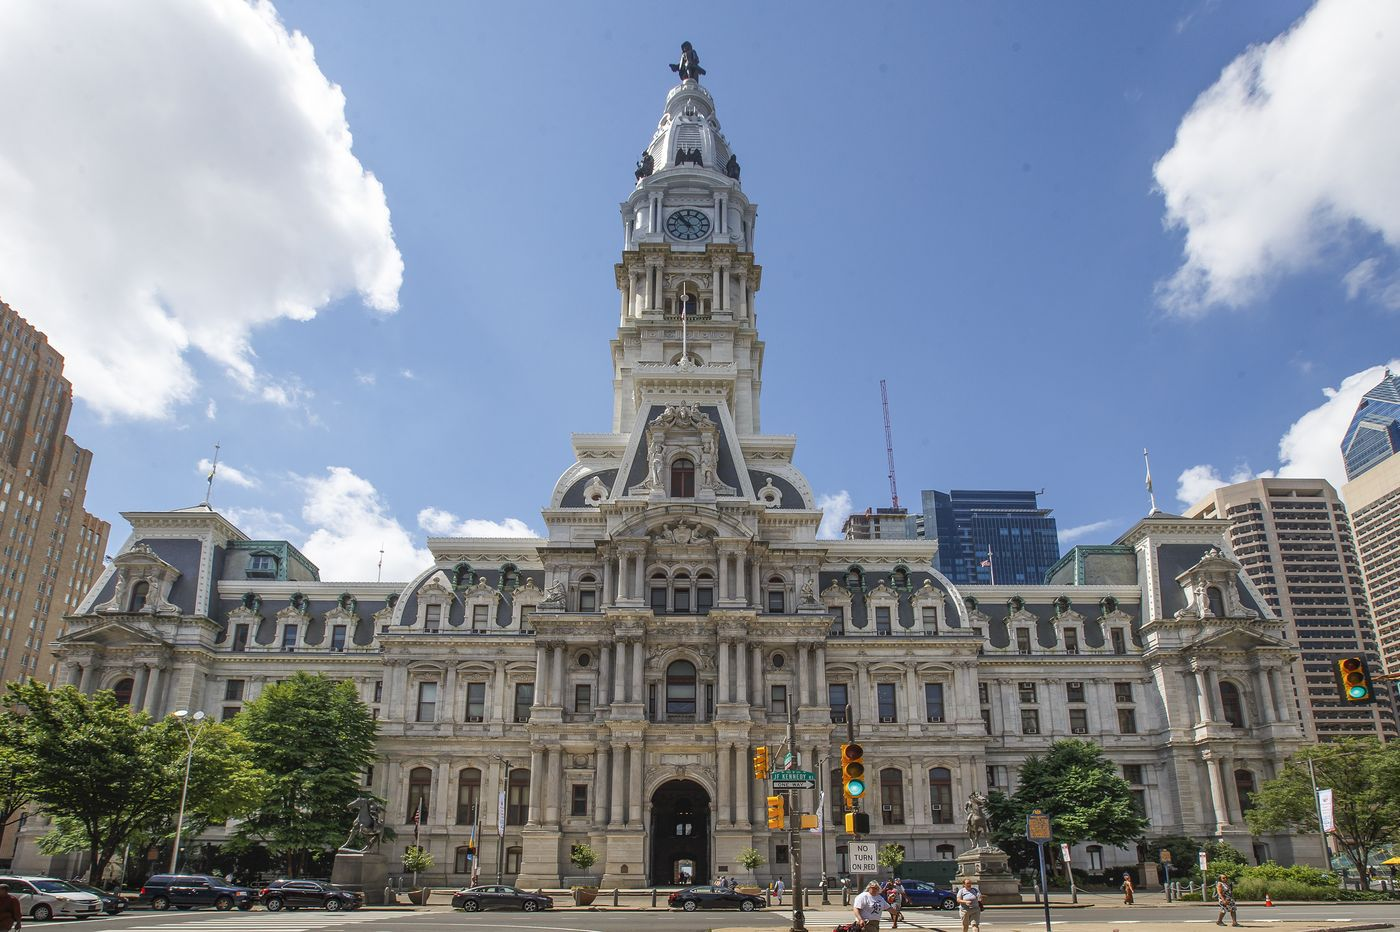 Philly city employees: Paycheck problems still abound amid search for solutions